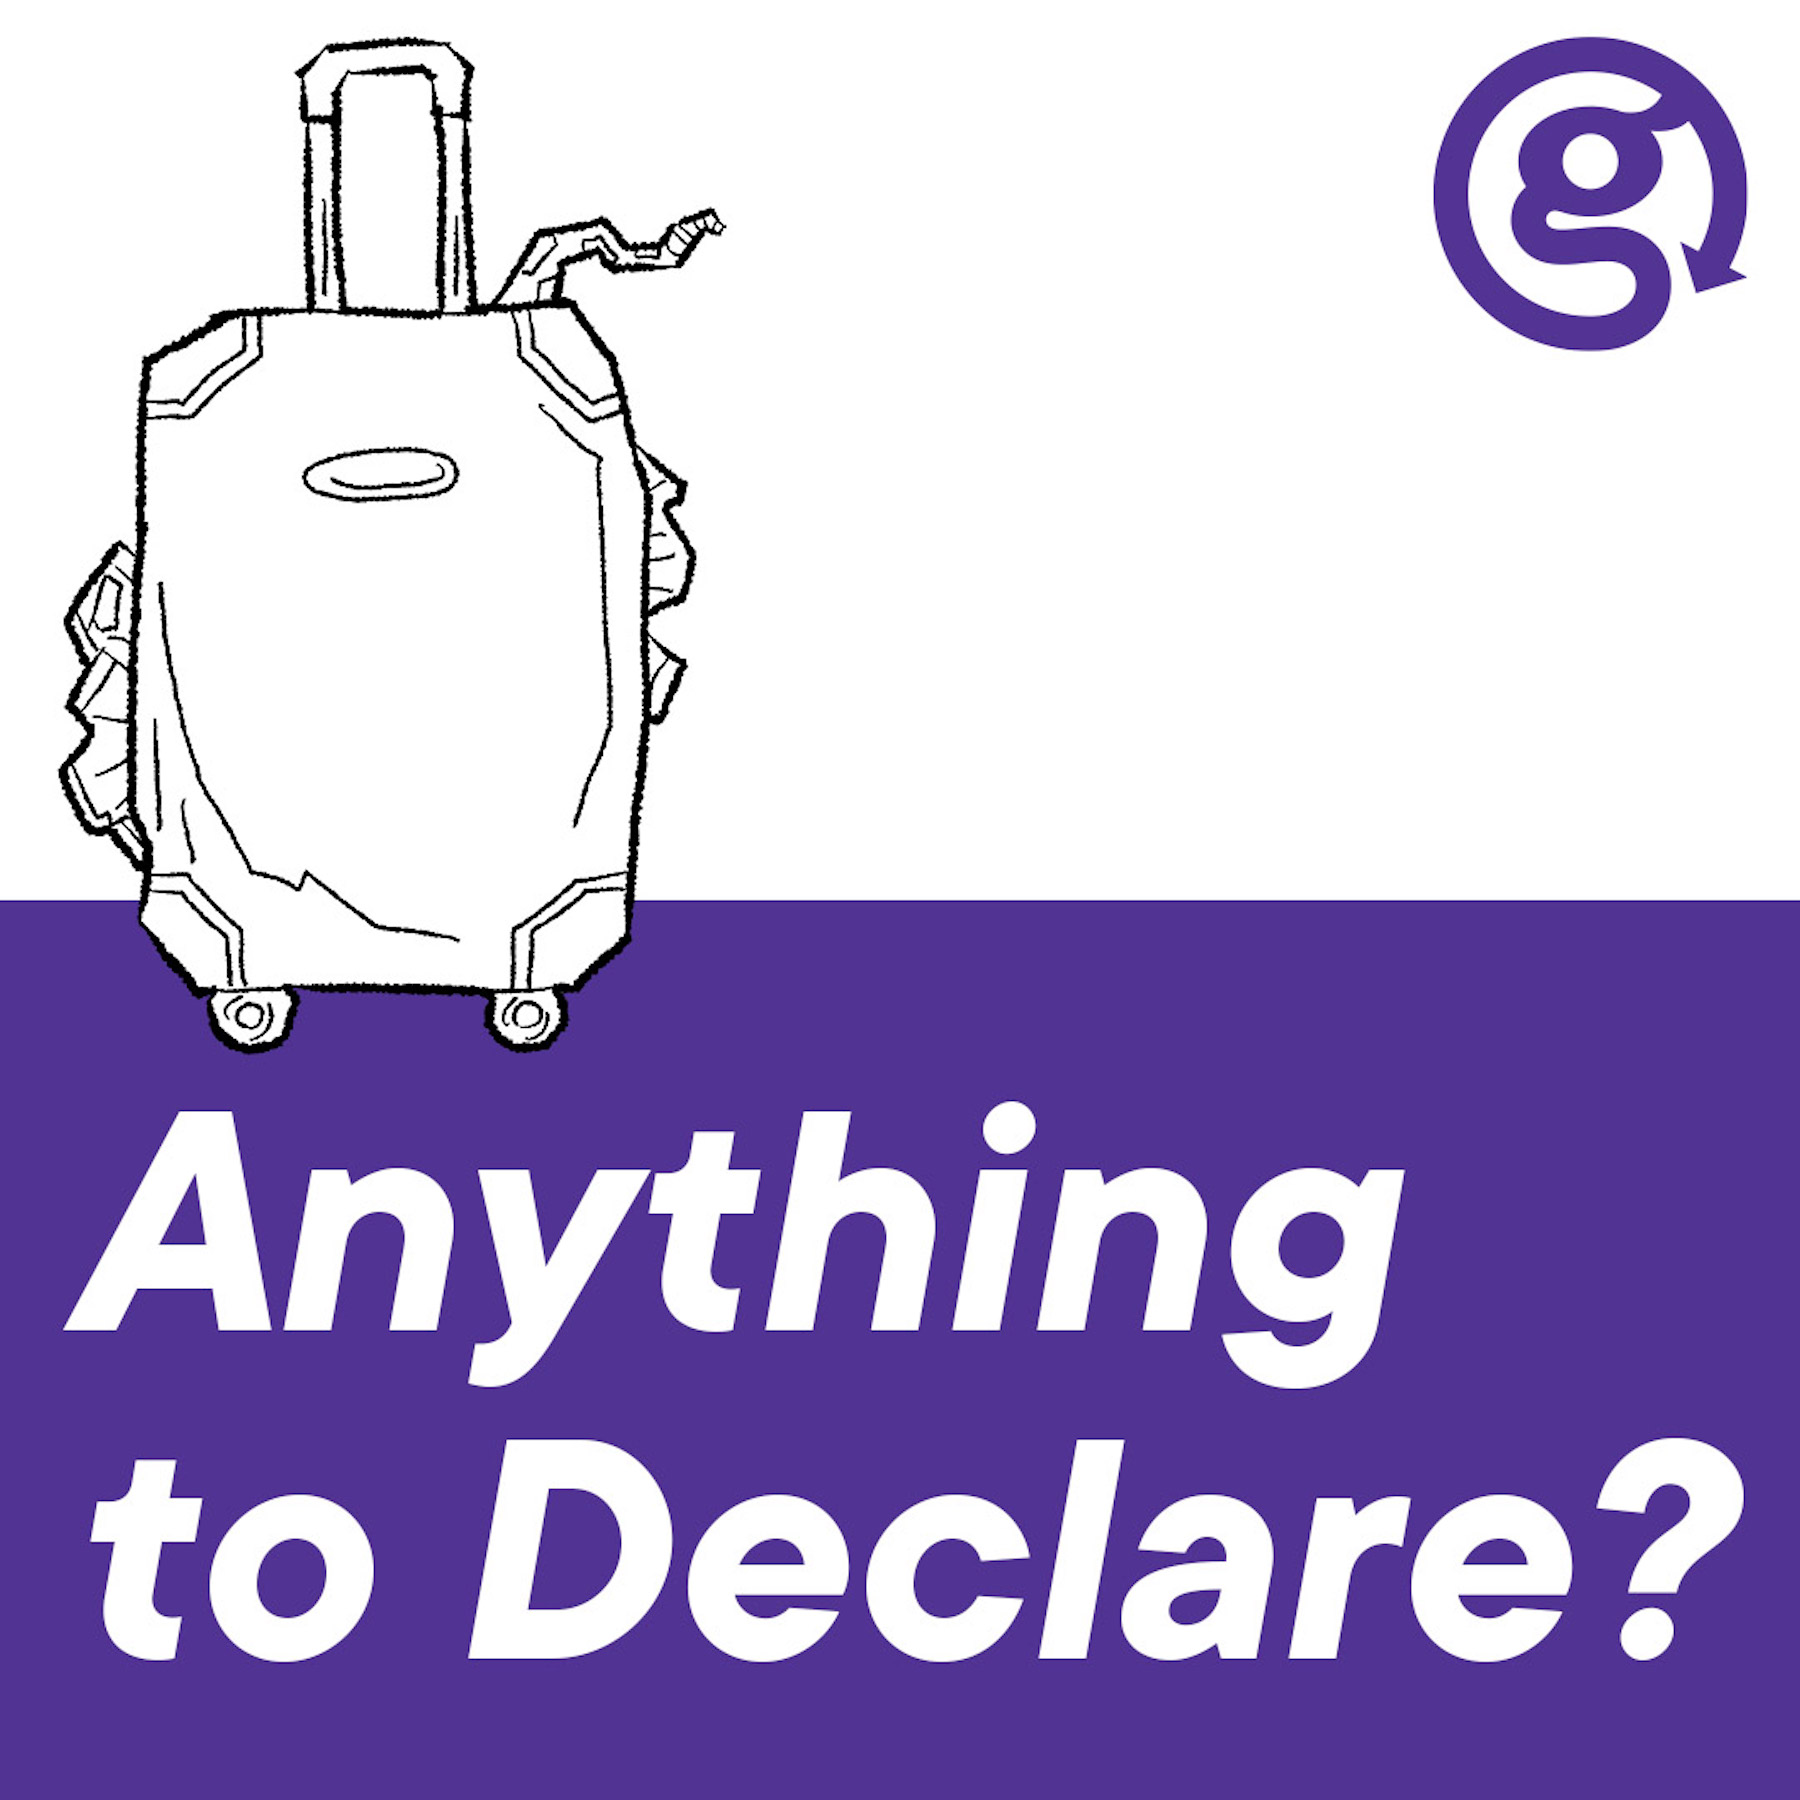 Anything to Declare